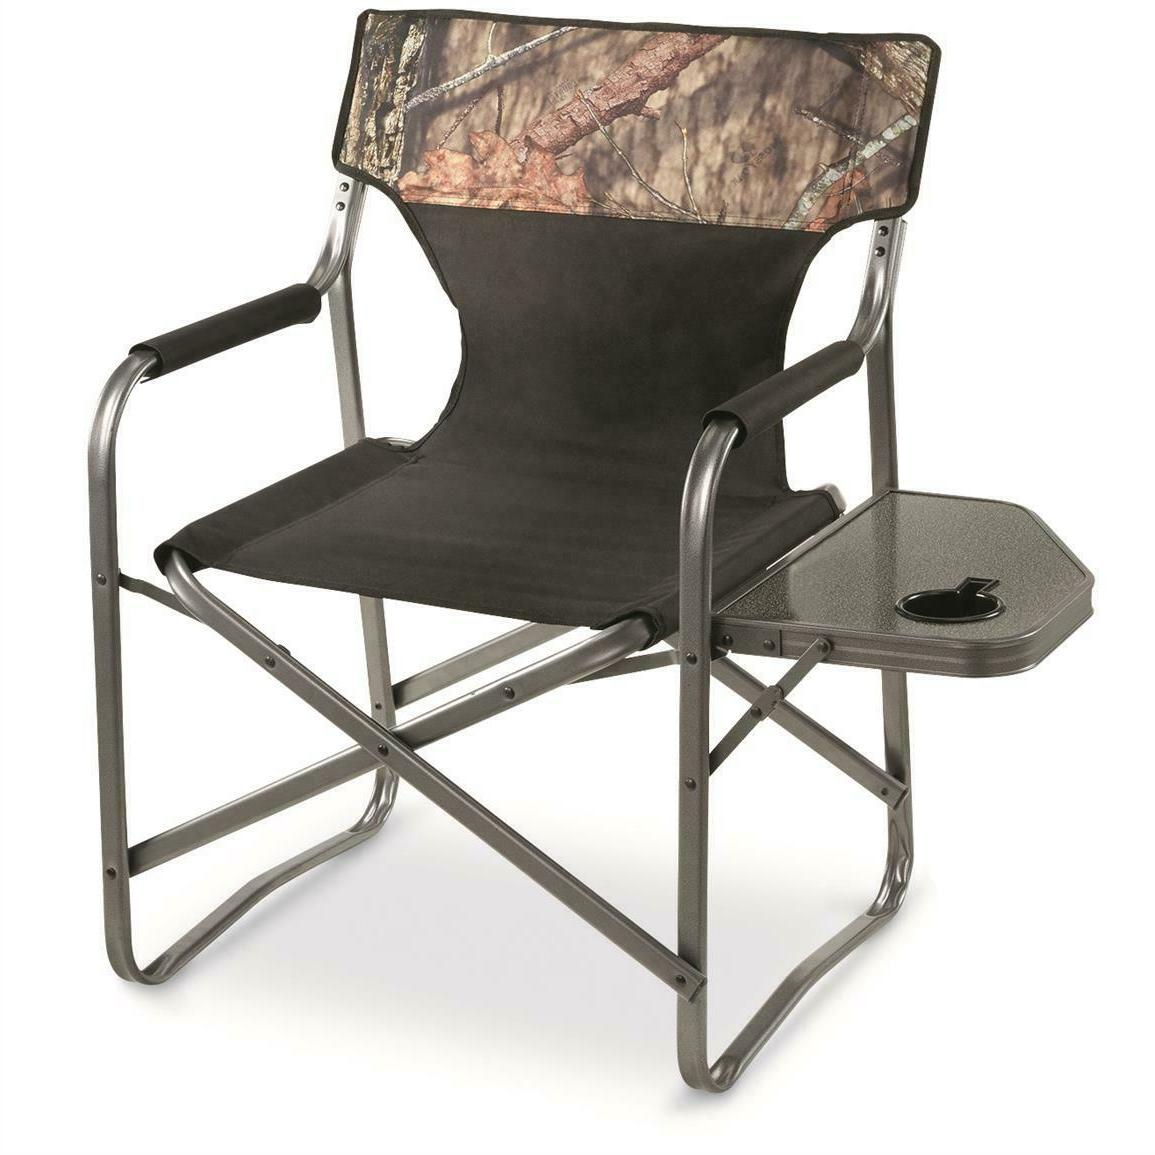 portable folding director chair lounge camping 500lb